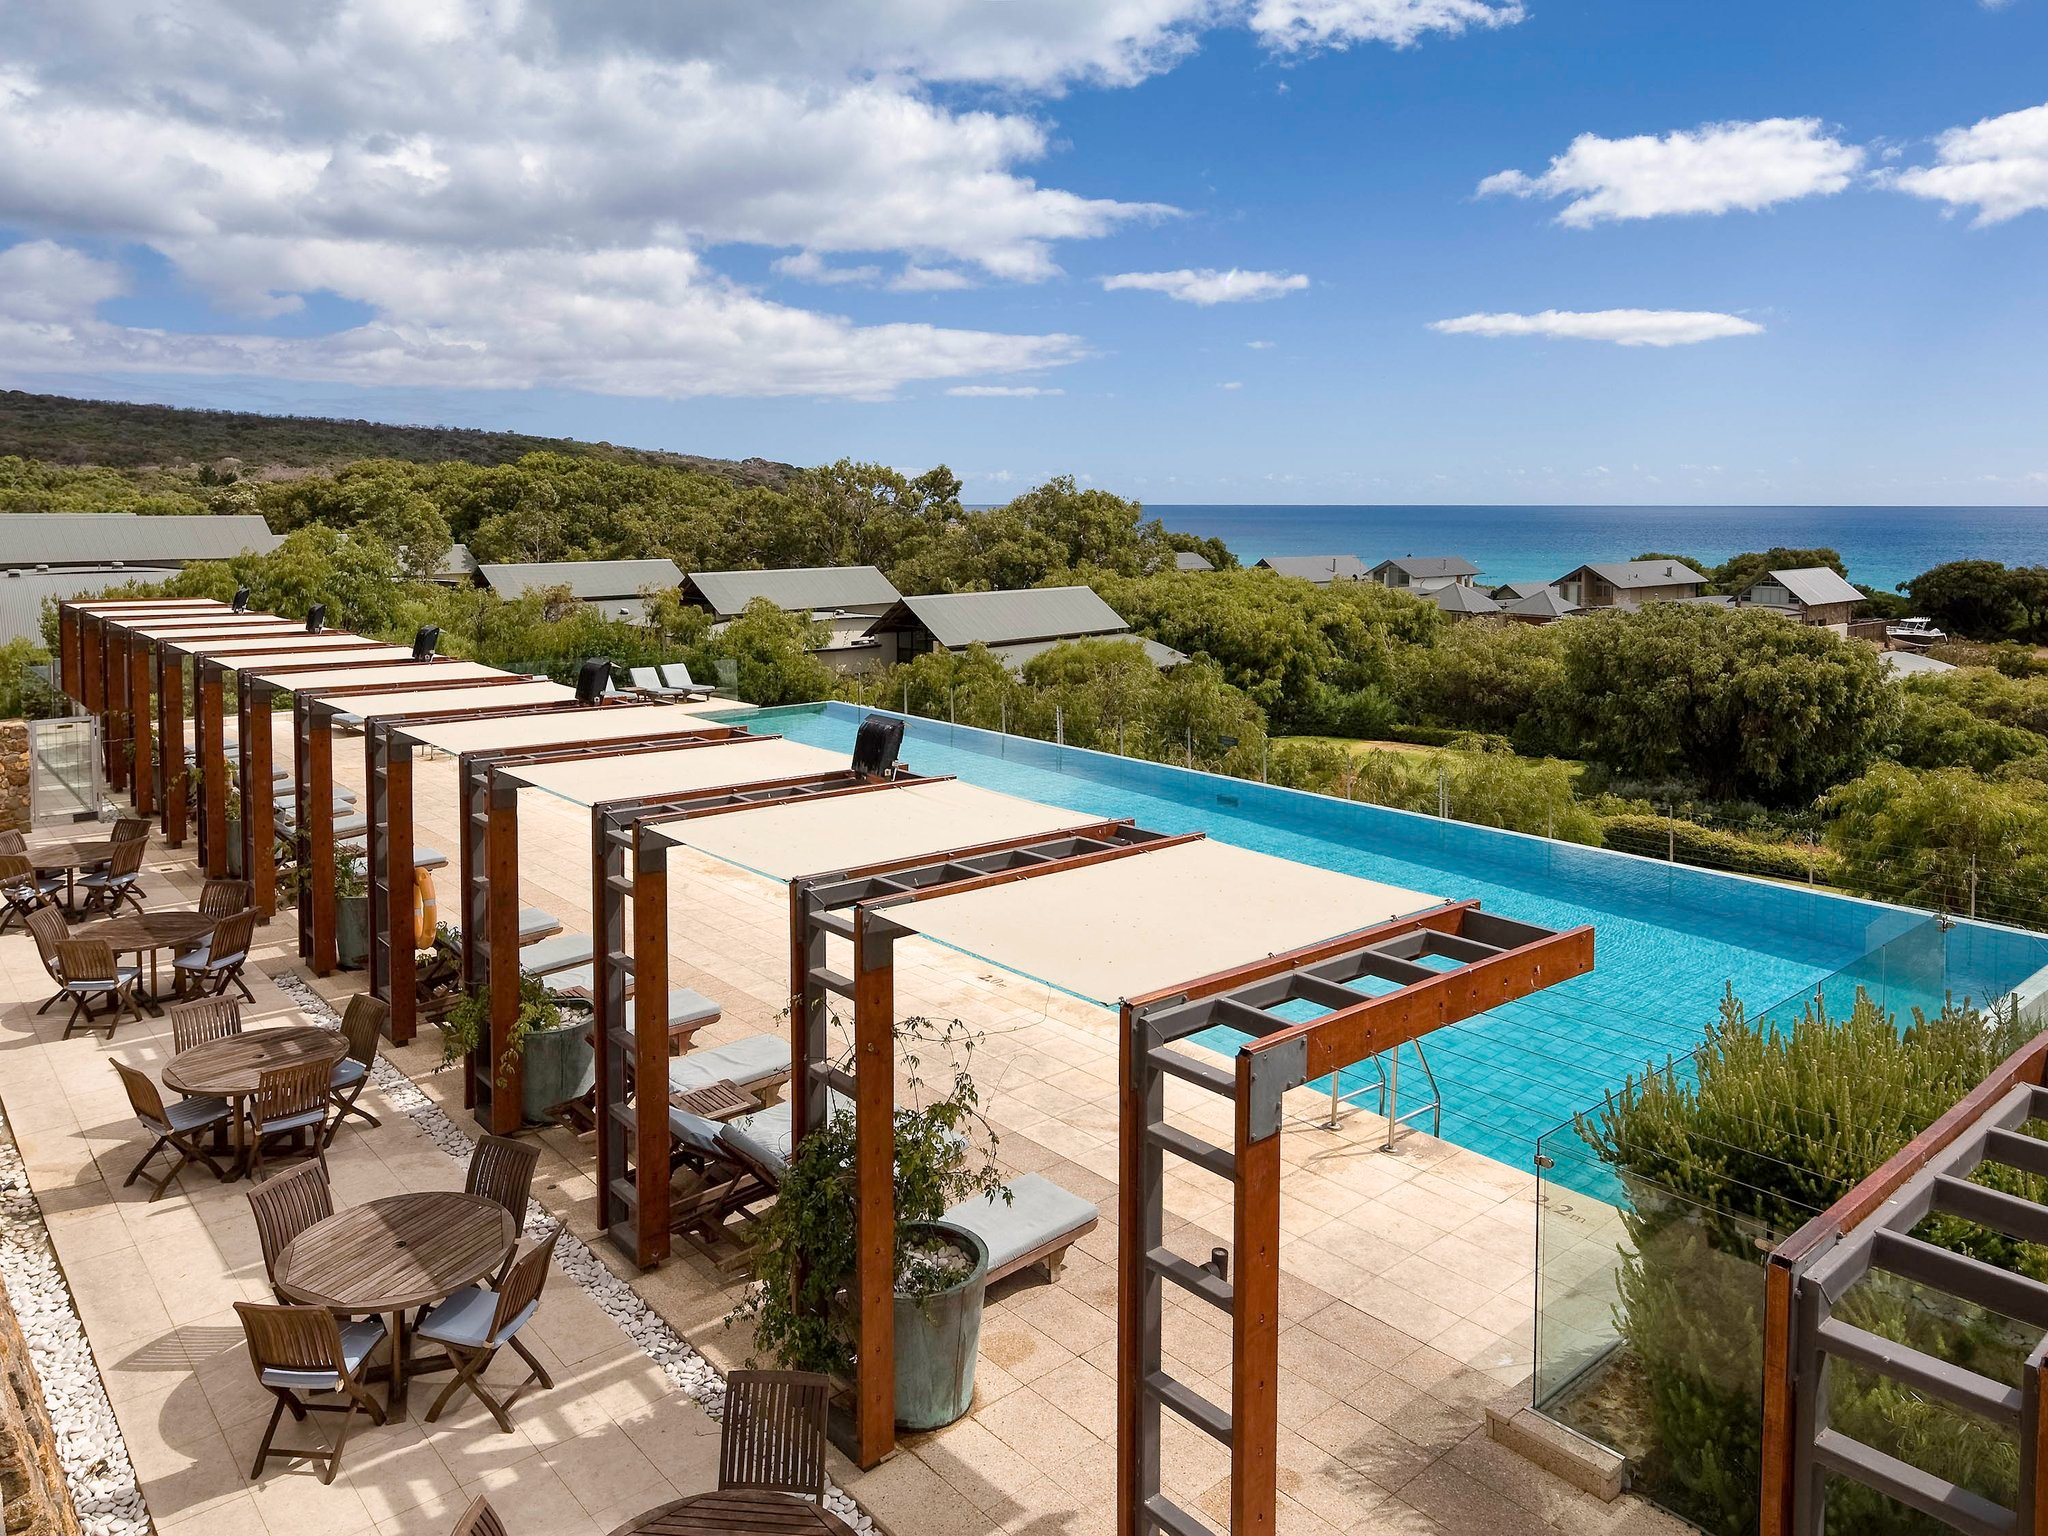 Pullman Bunker Bay Resort Margaret River Region